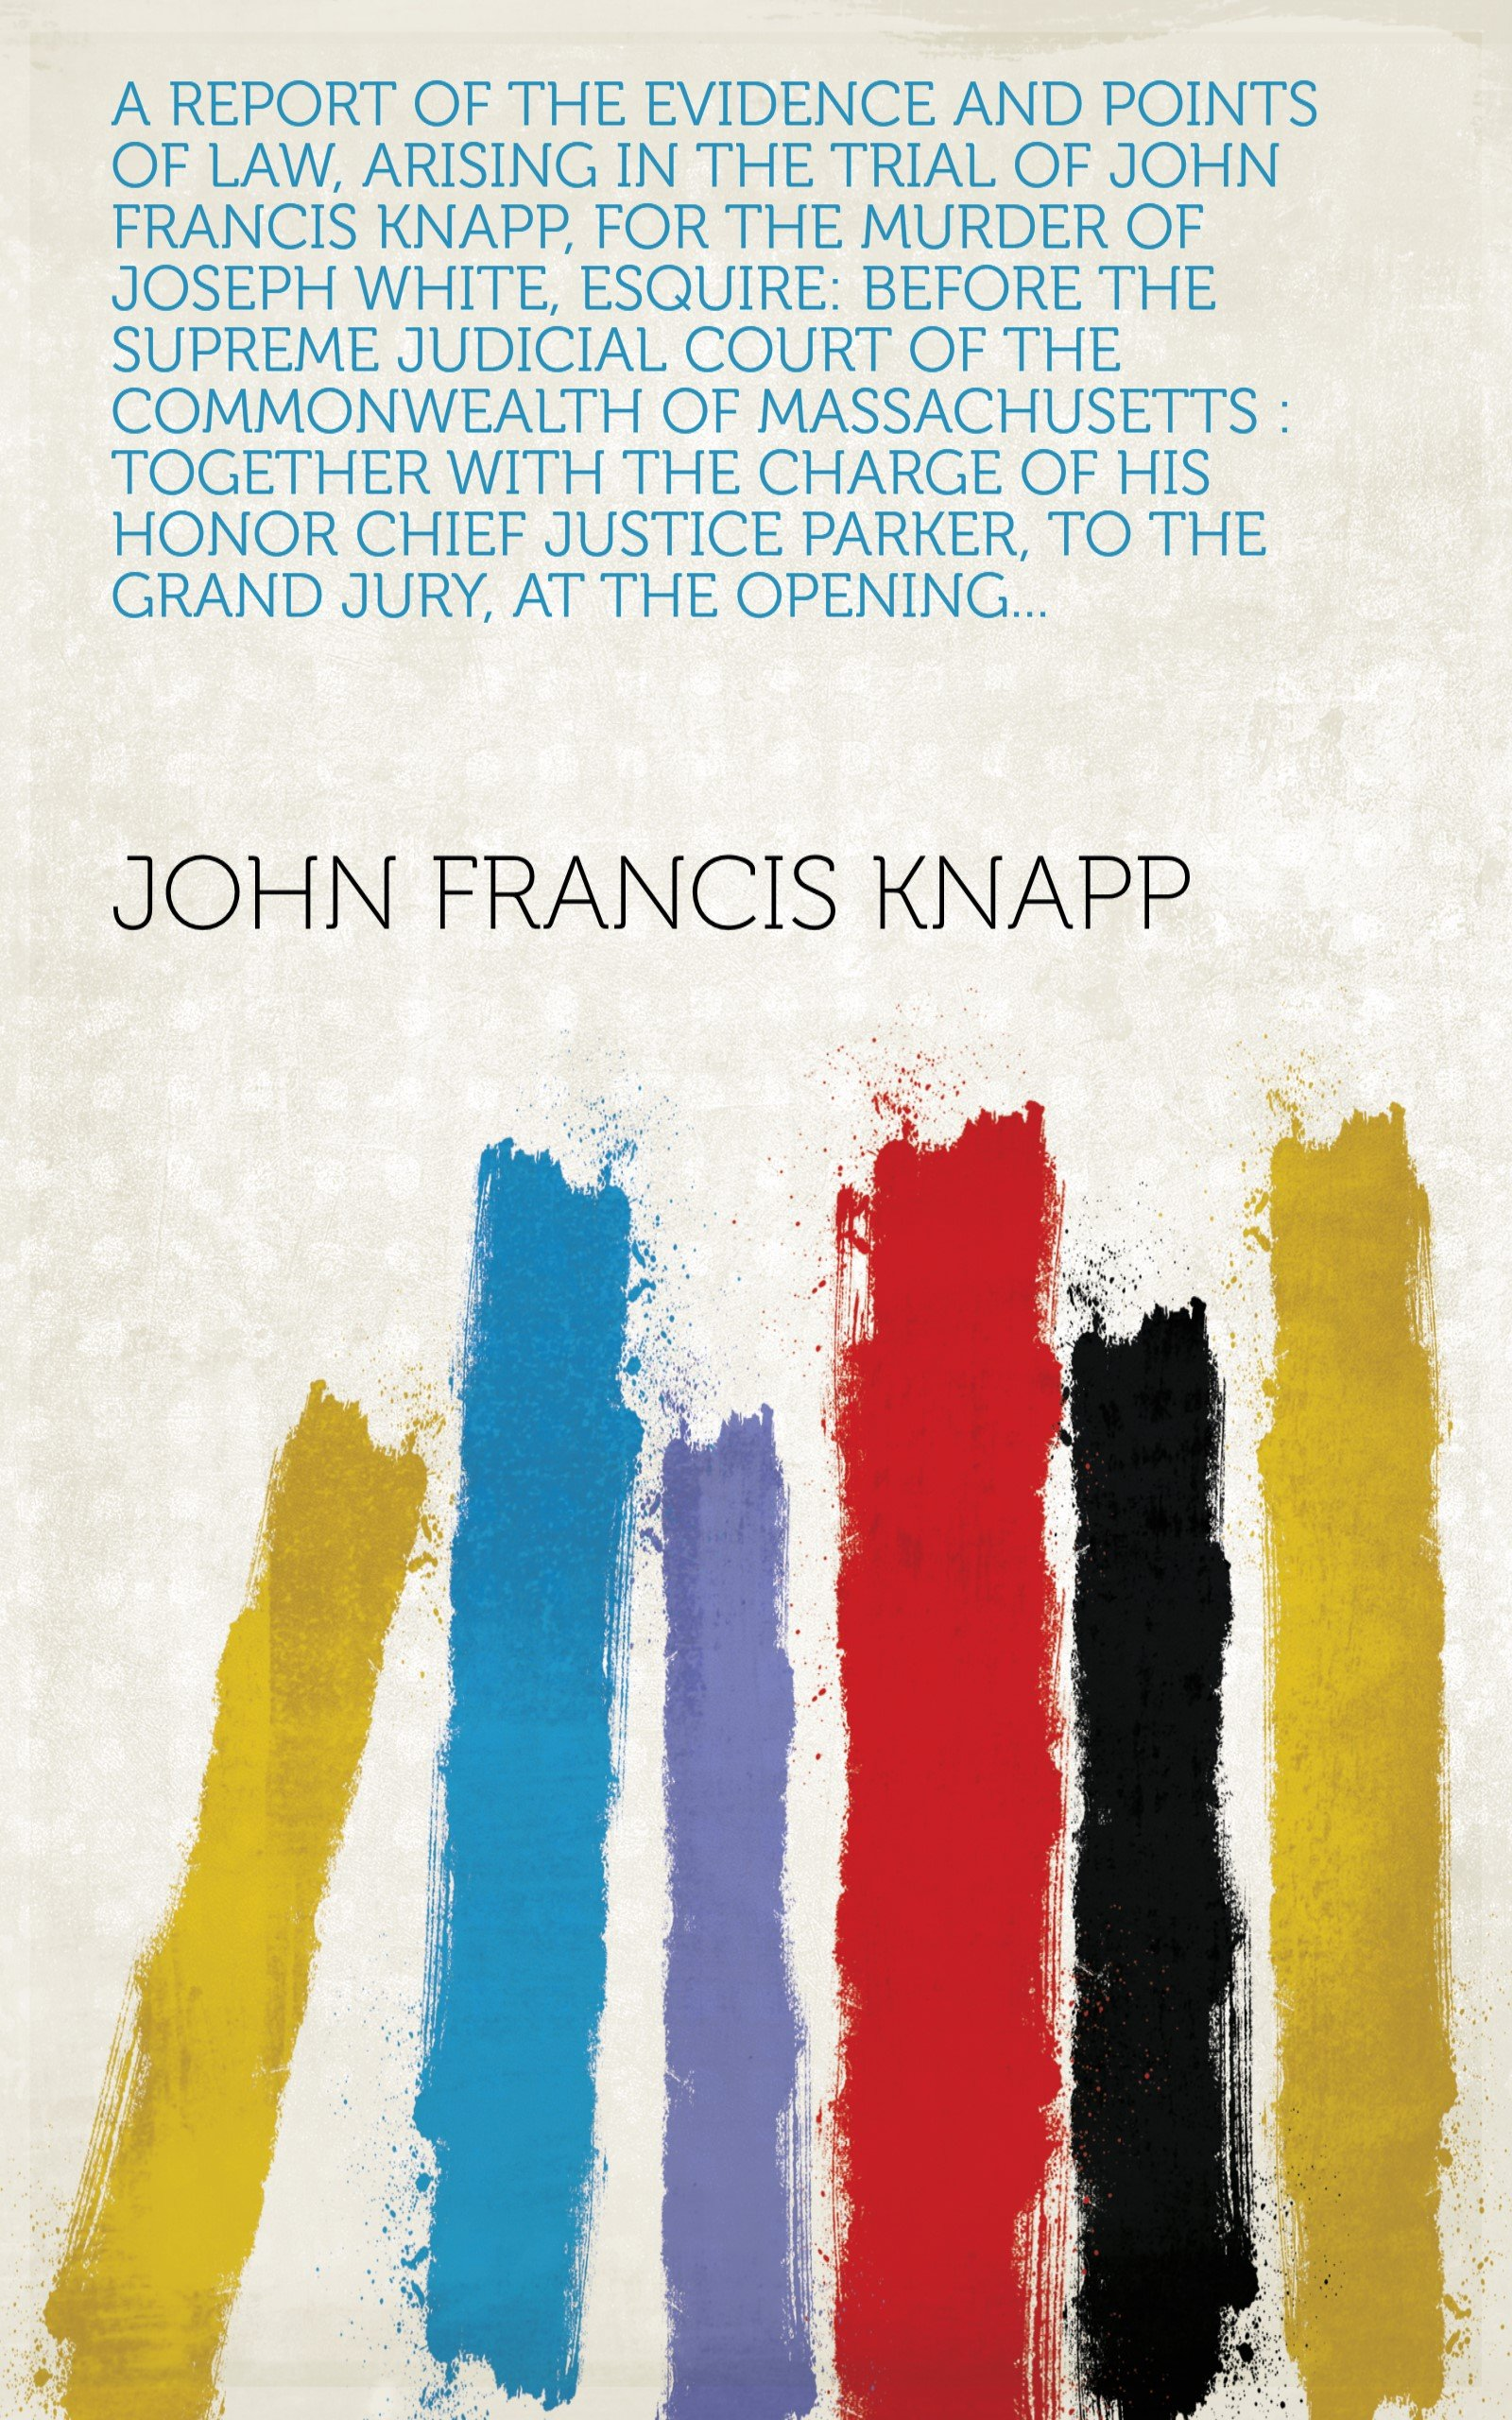 A report of the evidence and points of law, arising in the trial of John Francis Knapp, for the murder of Joseph White, Esquire: before the Supreme Judicial ... to the grand jury, at the opening...